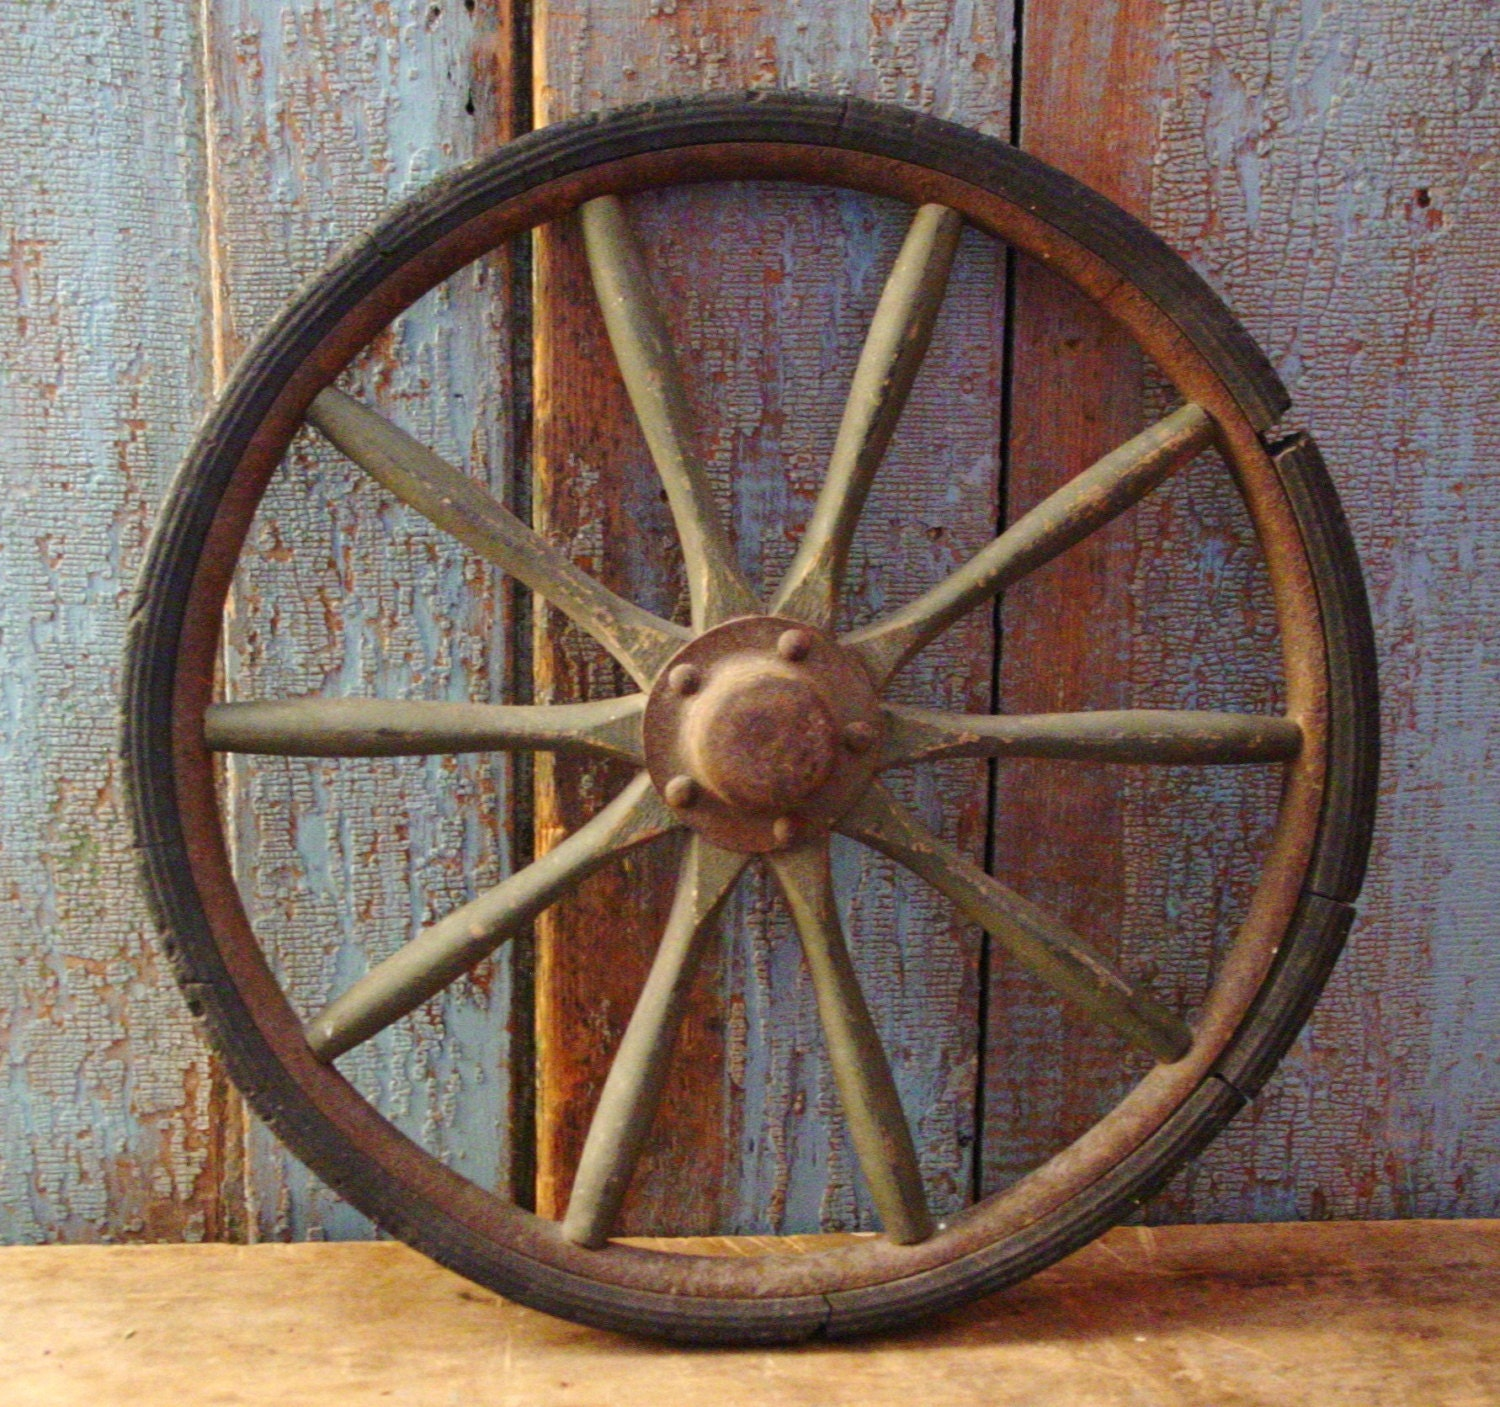 Antique Wagon Wheel Wood Wooden Spokes Log Cabin Decor